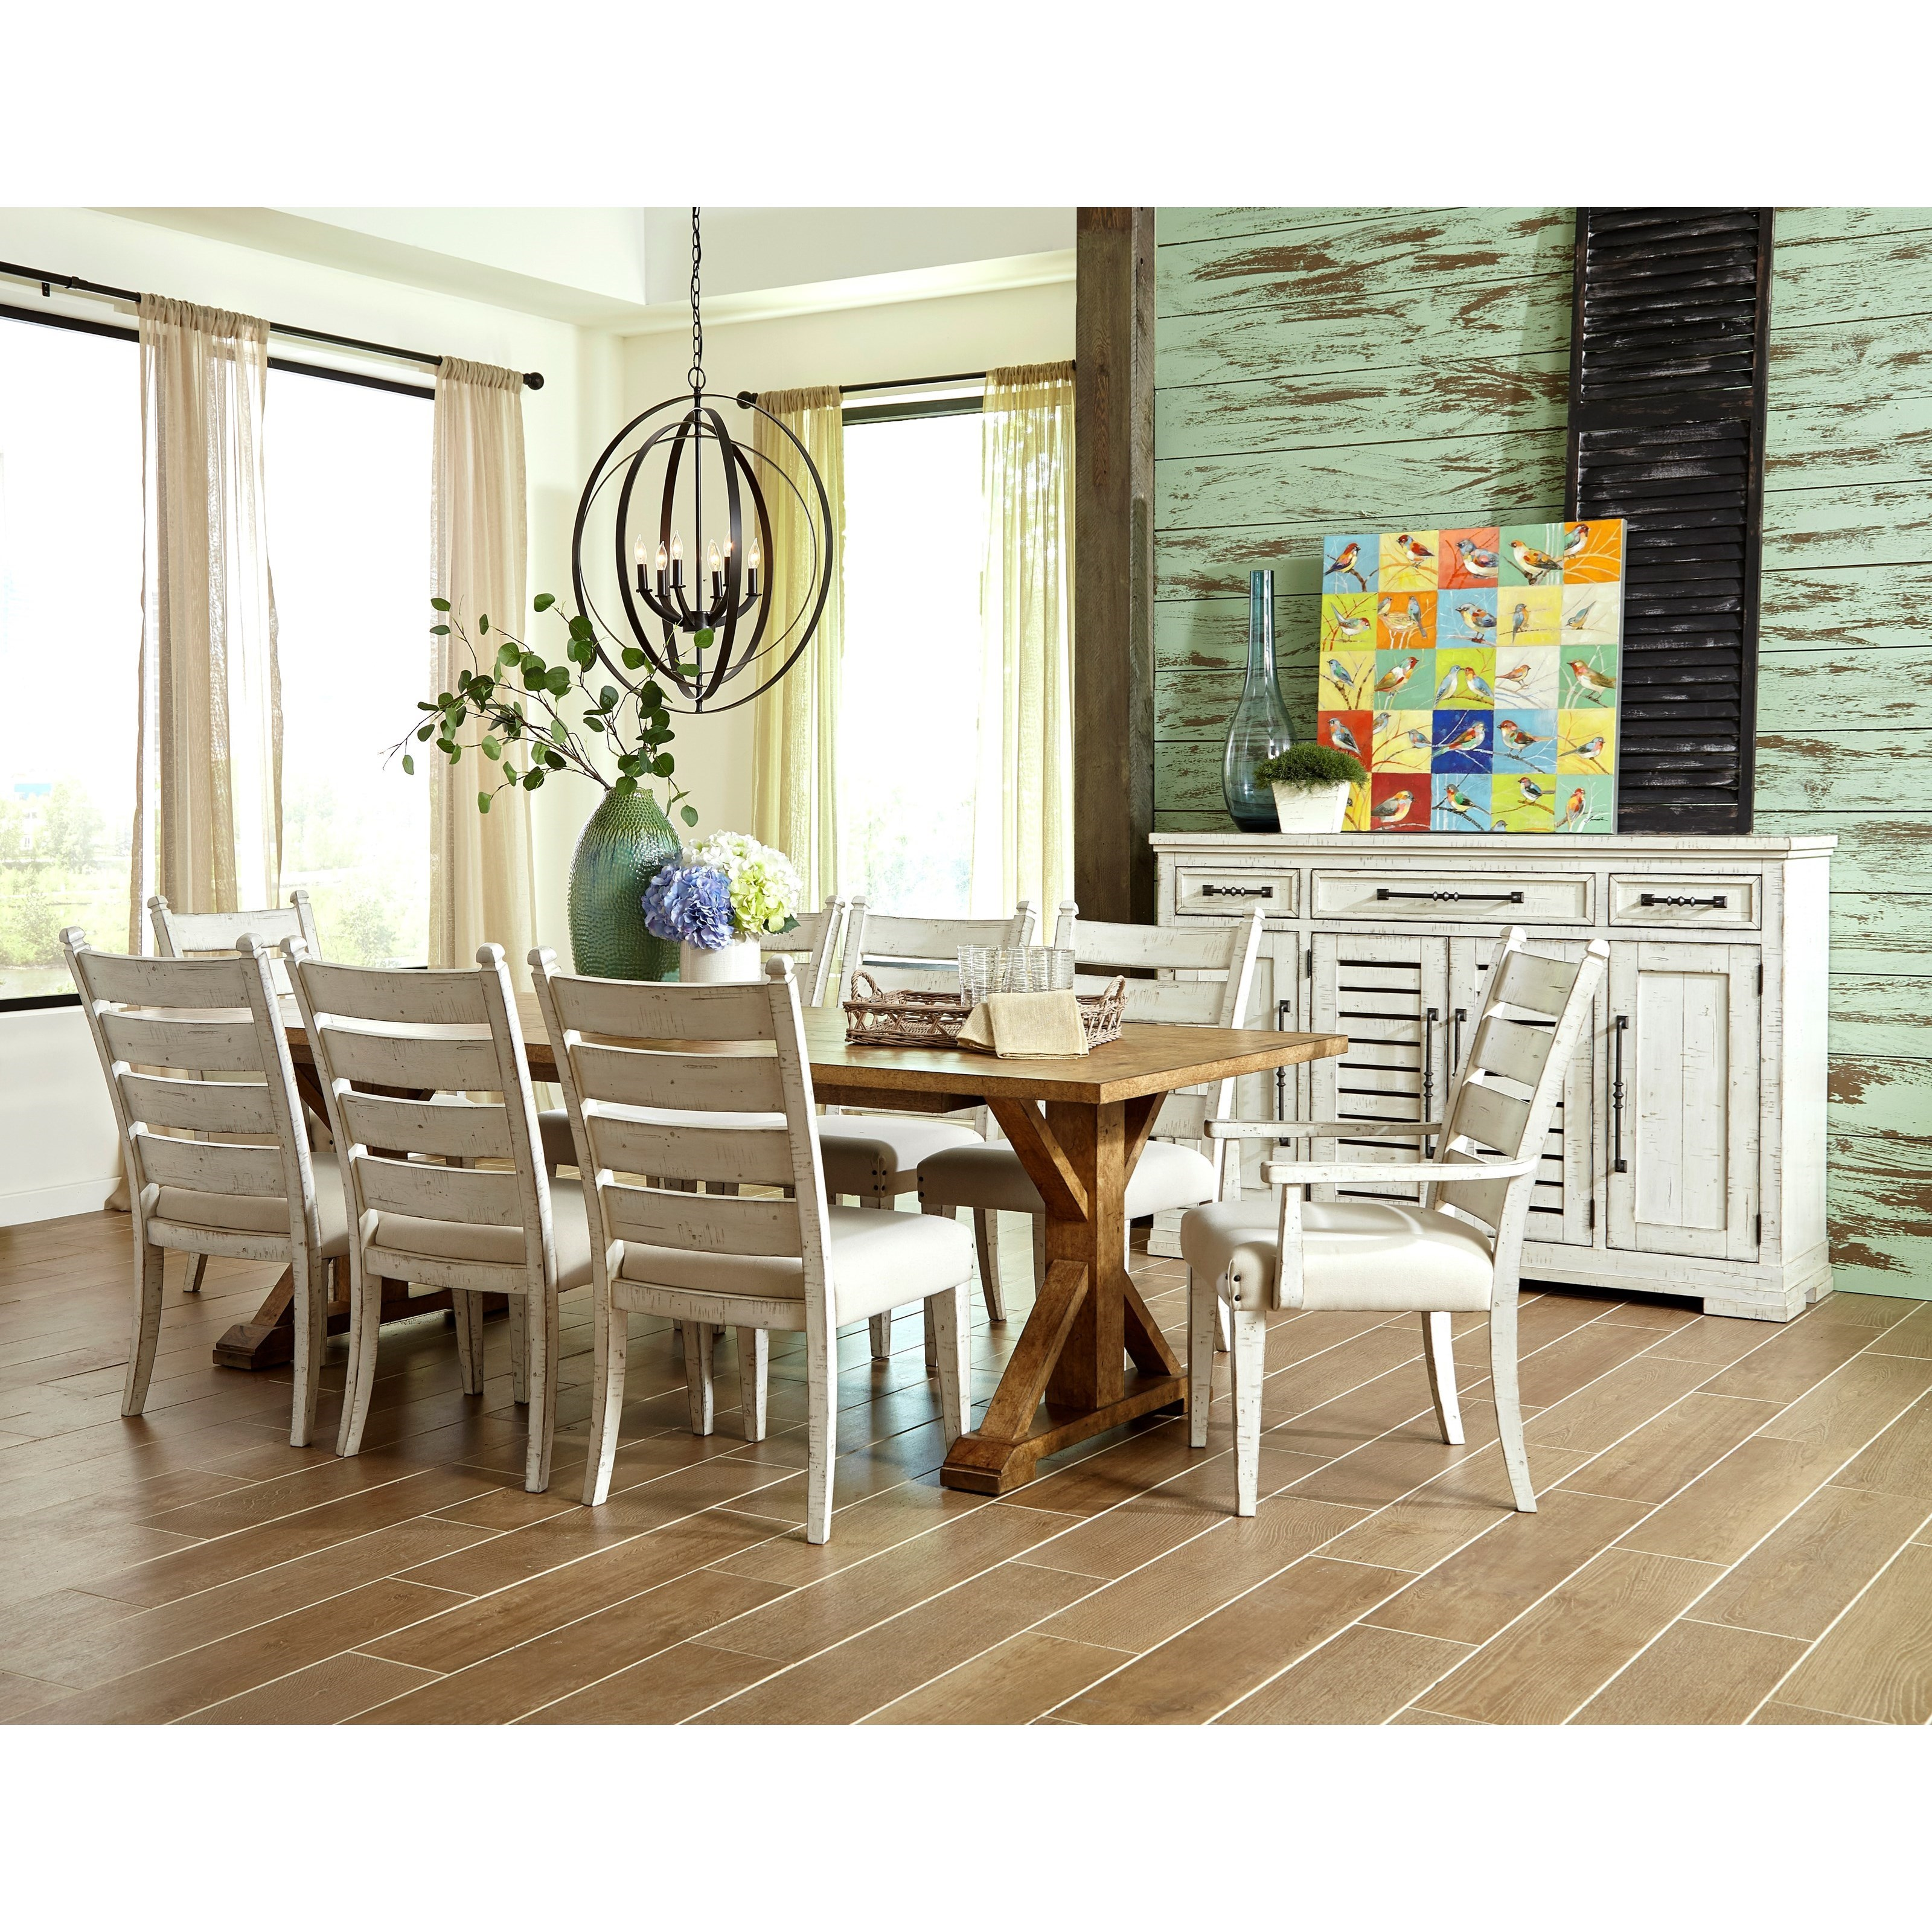 Coming Home Ten Piece Formal Dining Room Group by Trisha Yearwood Home Collection by Klaussner at Powell's Furniture and Mattress